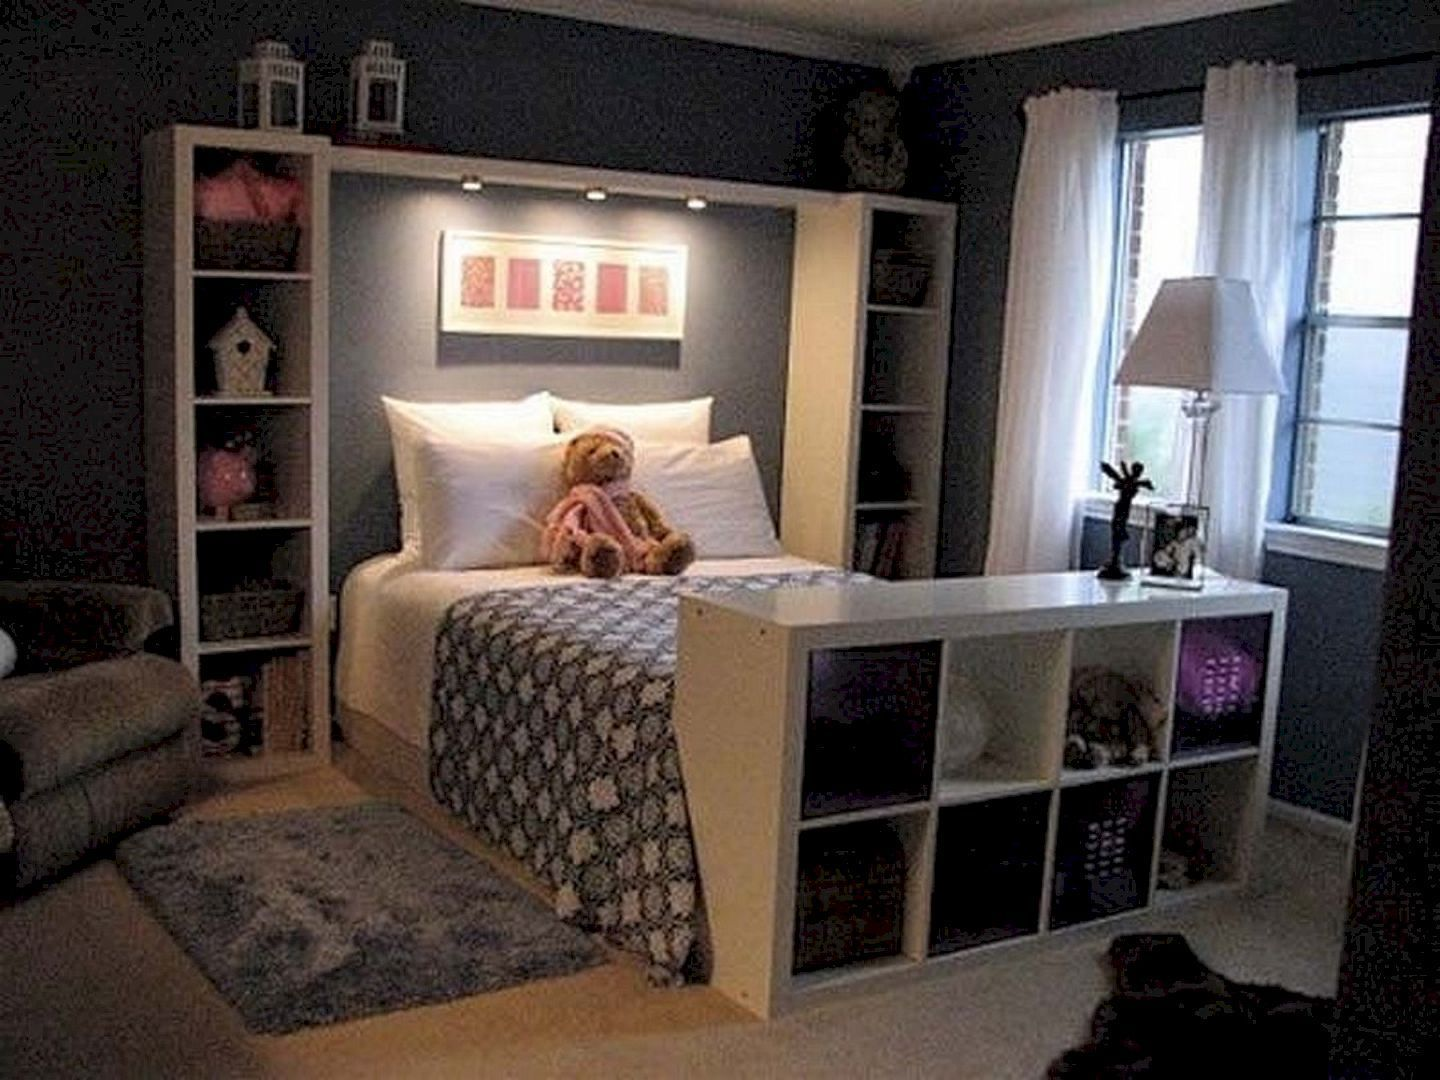 Awesome Teen Bedroom Interior Ideas  Https://www.futuristarchitecture.com/23866 Awesome Teen Bedroom Interior  Ideas.html